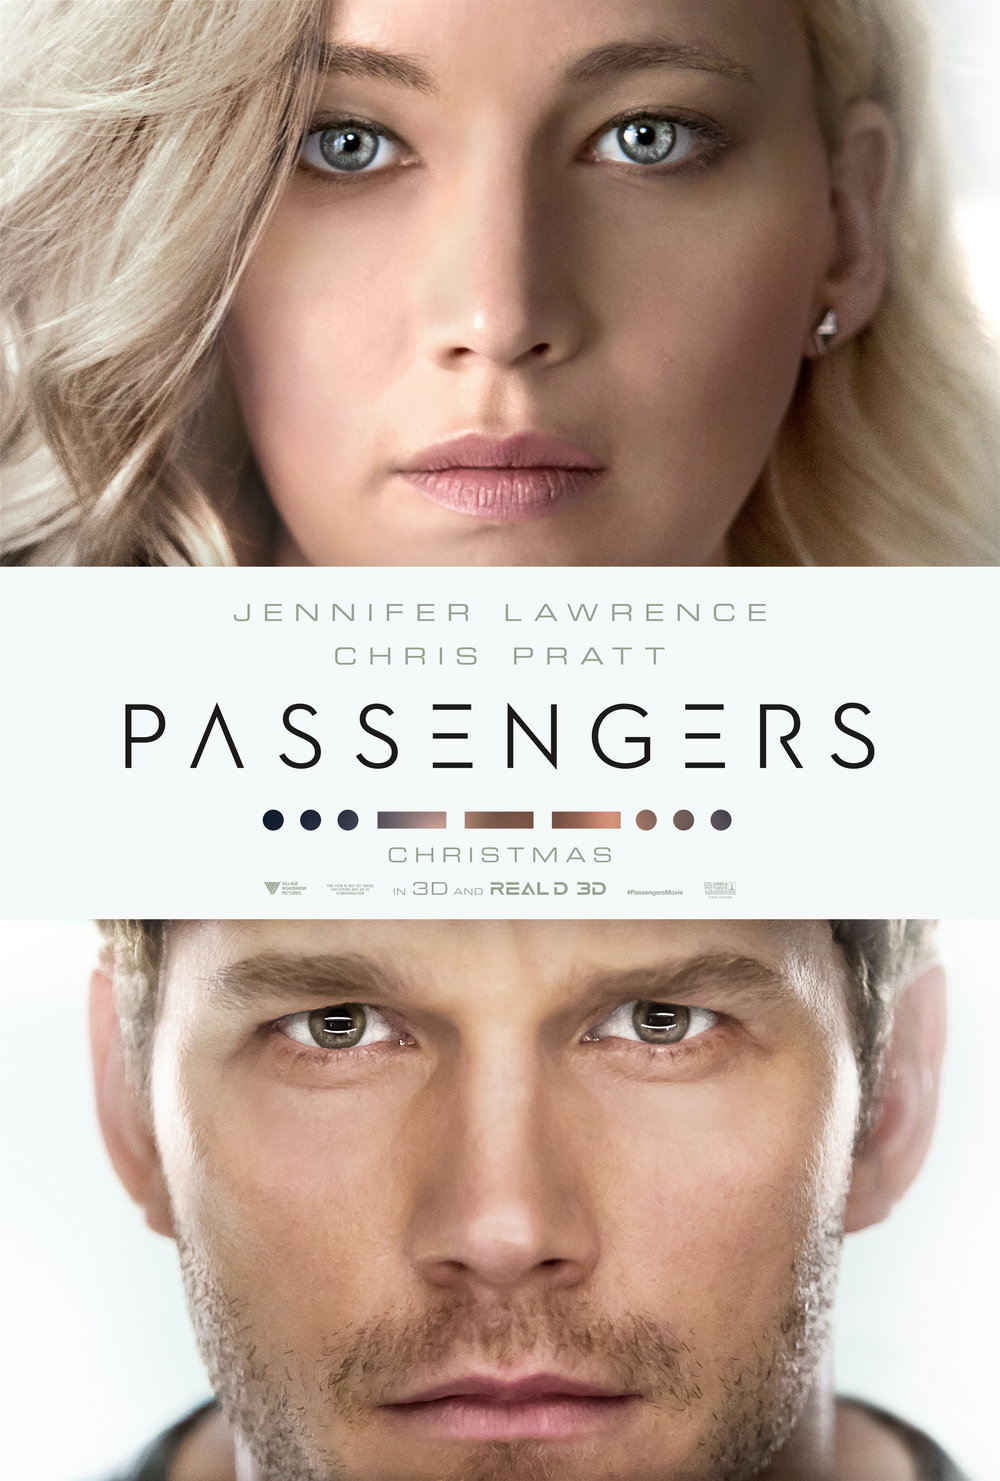 Passengers starring Jennifer Lawrence and Chris Pratt, Photo Courtesy of Sony Pictures Entertainment